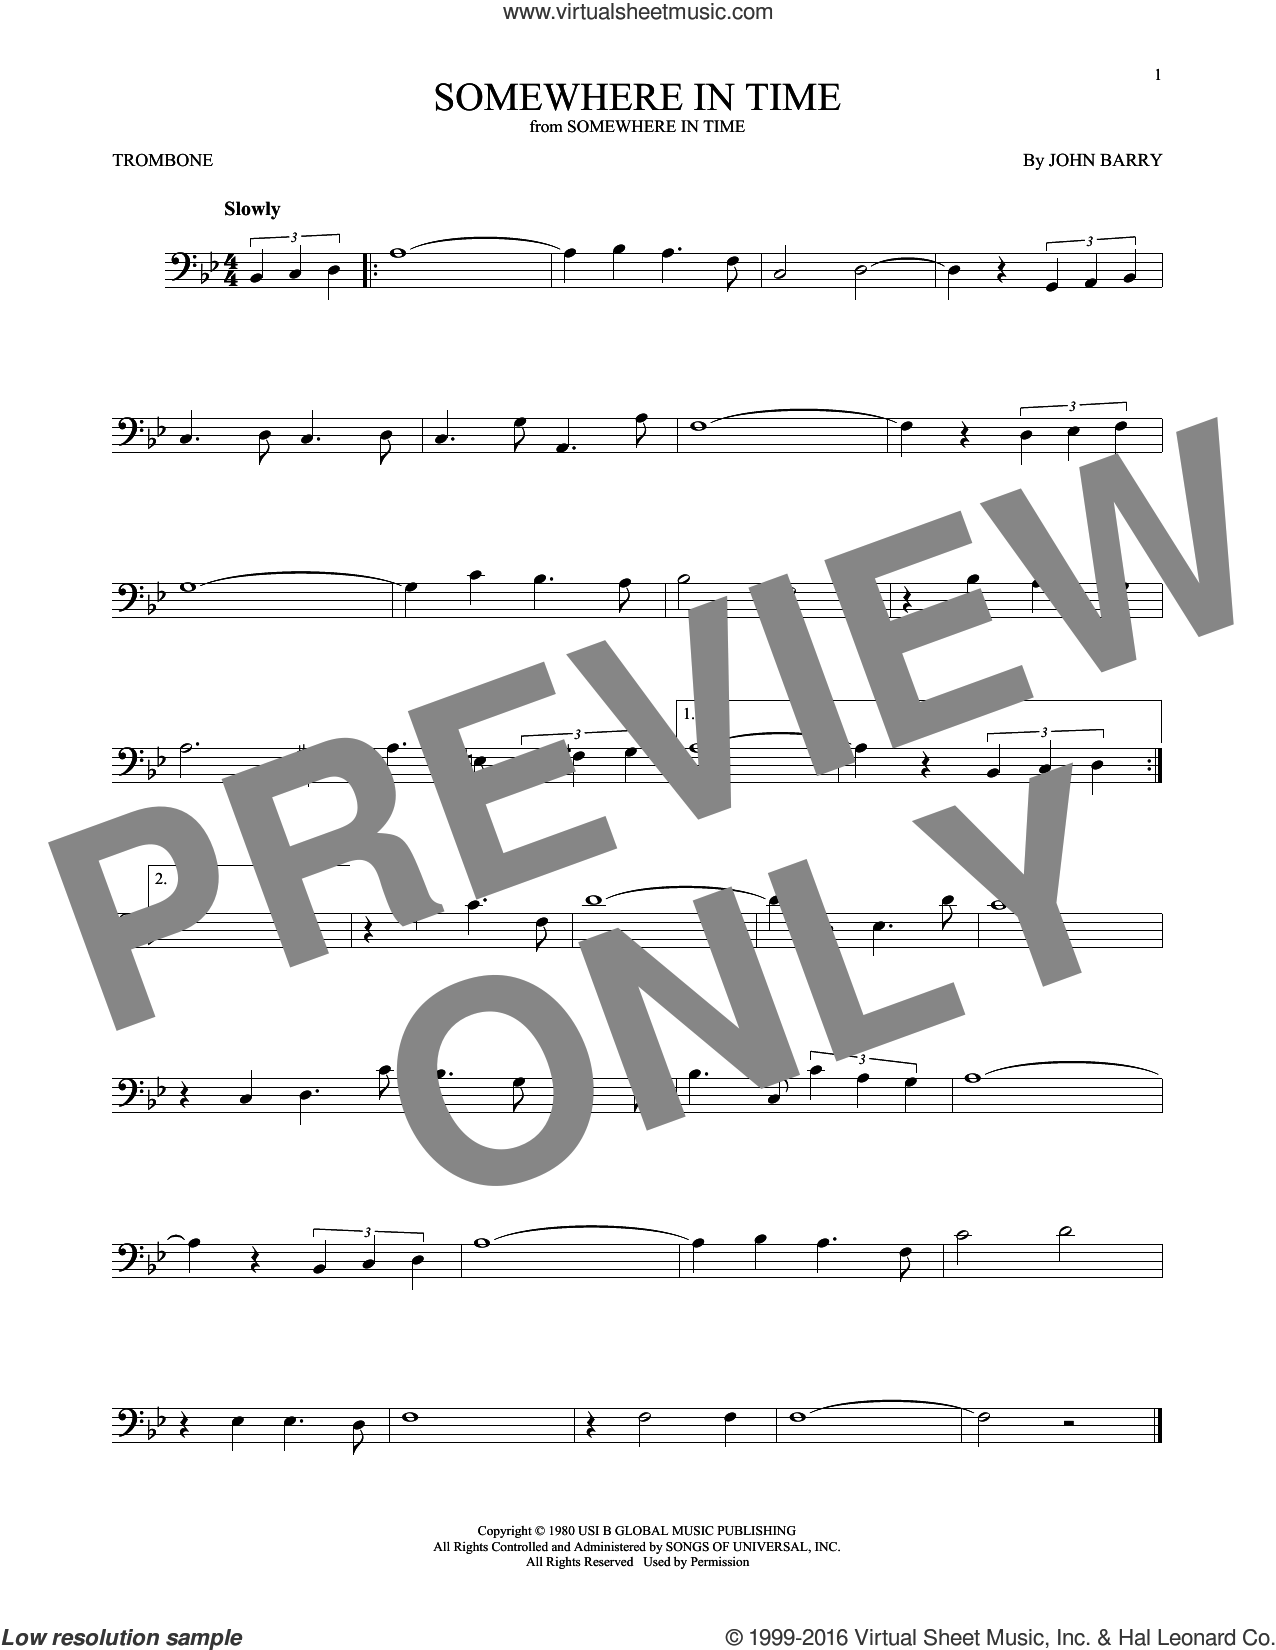 Somewhere In Time sheet music for trombone solo by John Barry and B.A. Robertson, intermediate skill level